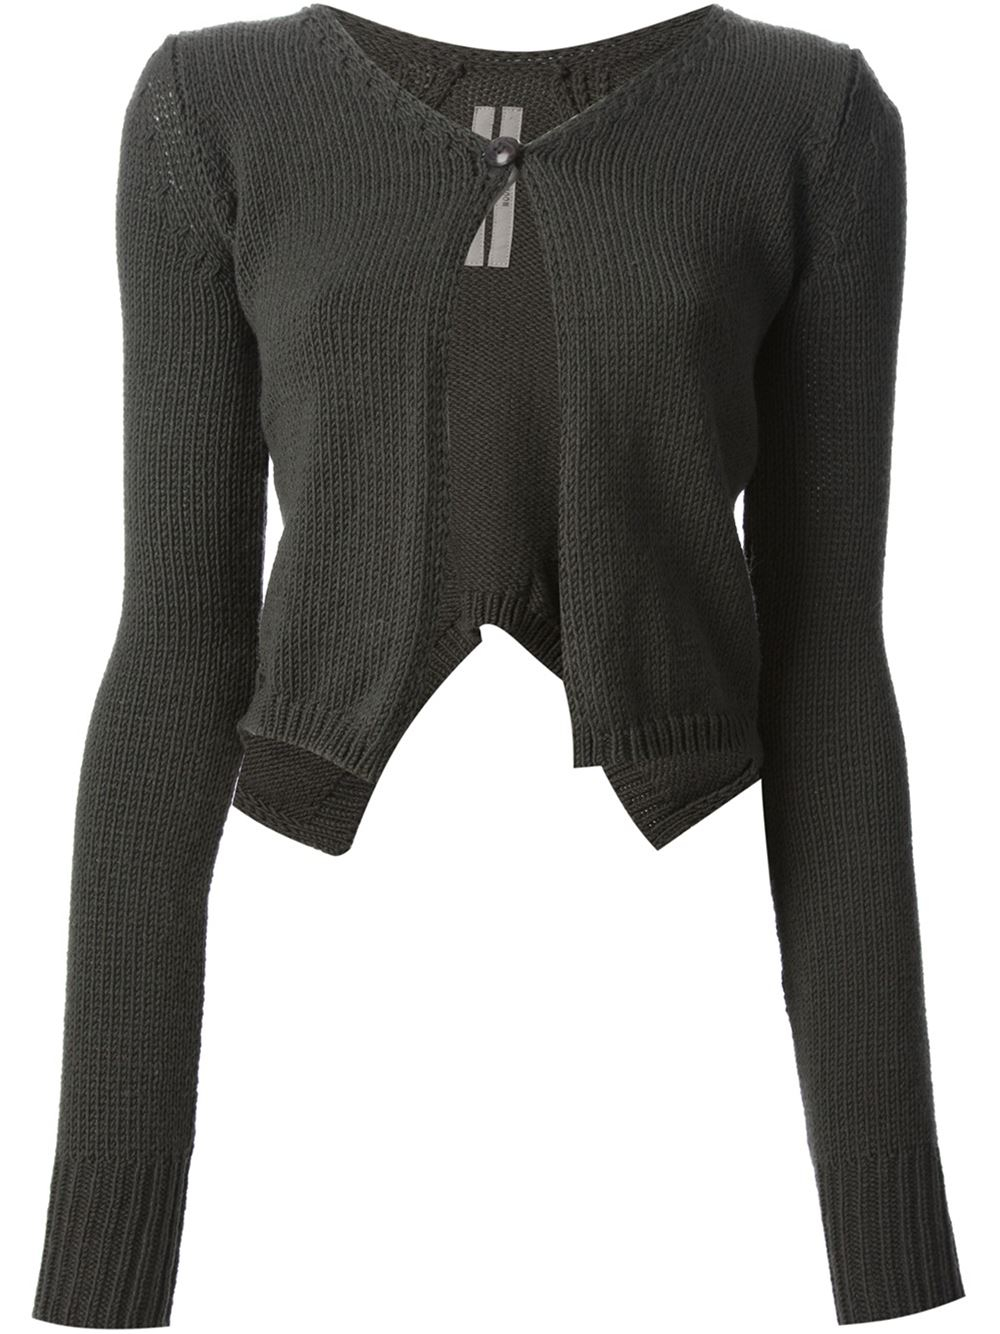 Lyst - Rick Owens Short Butterfly Cardigan in Green 603b1ab5d